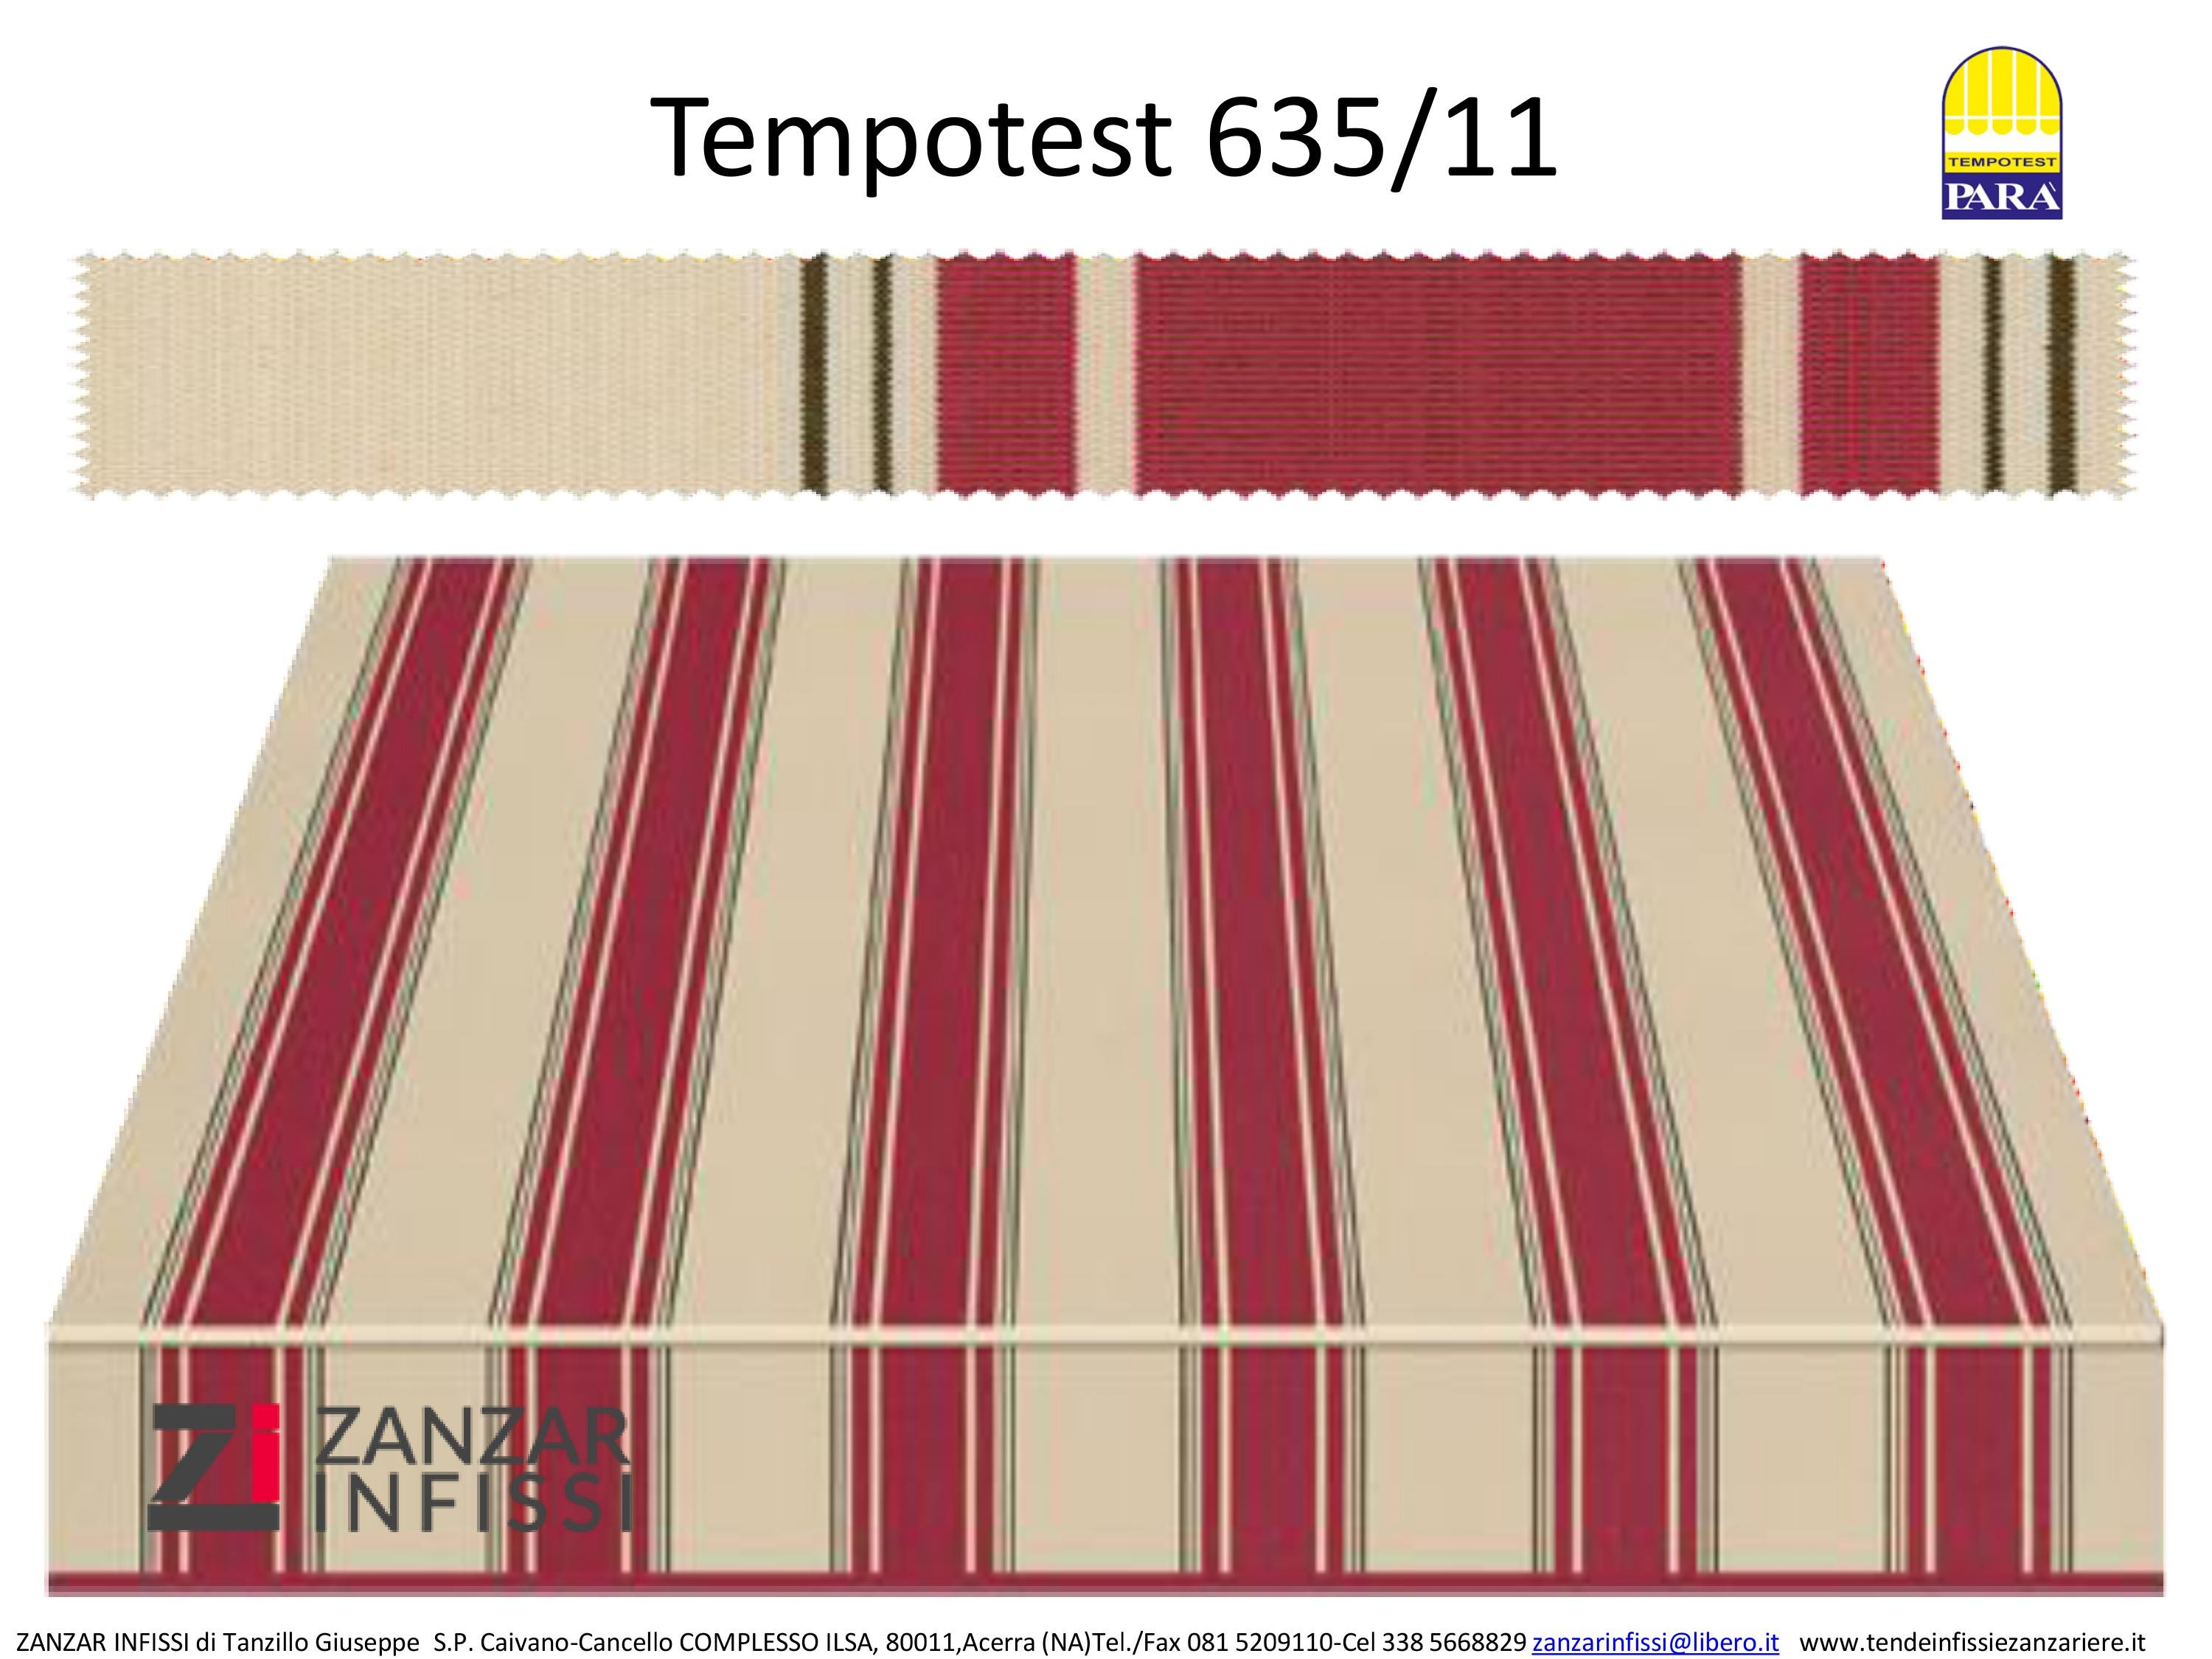 Tempotest 635/11